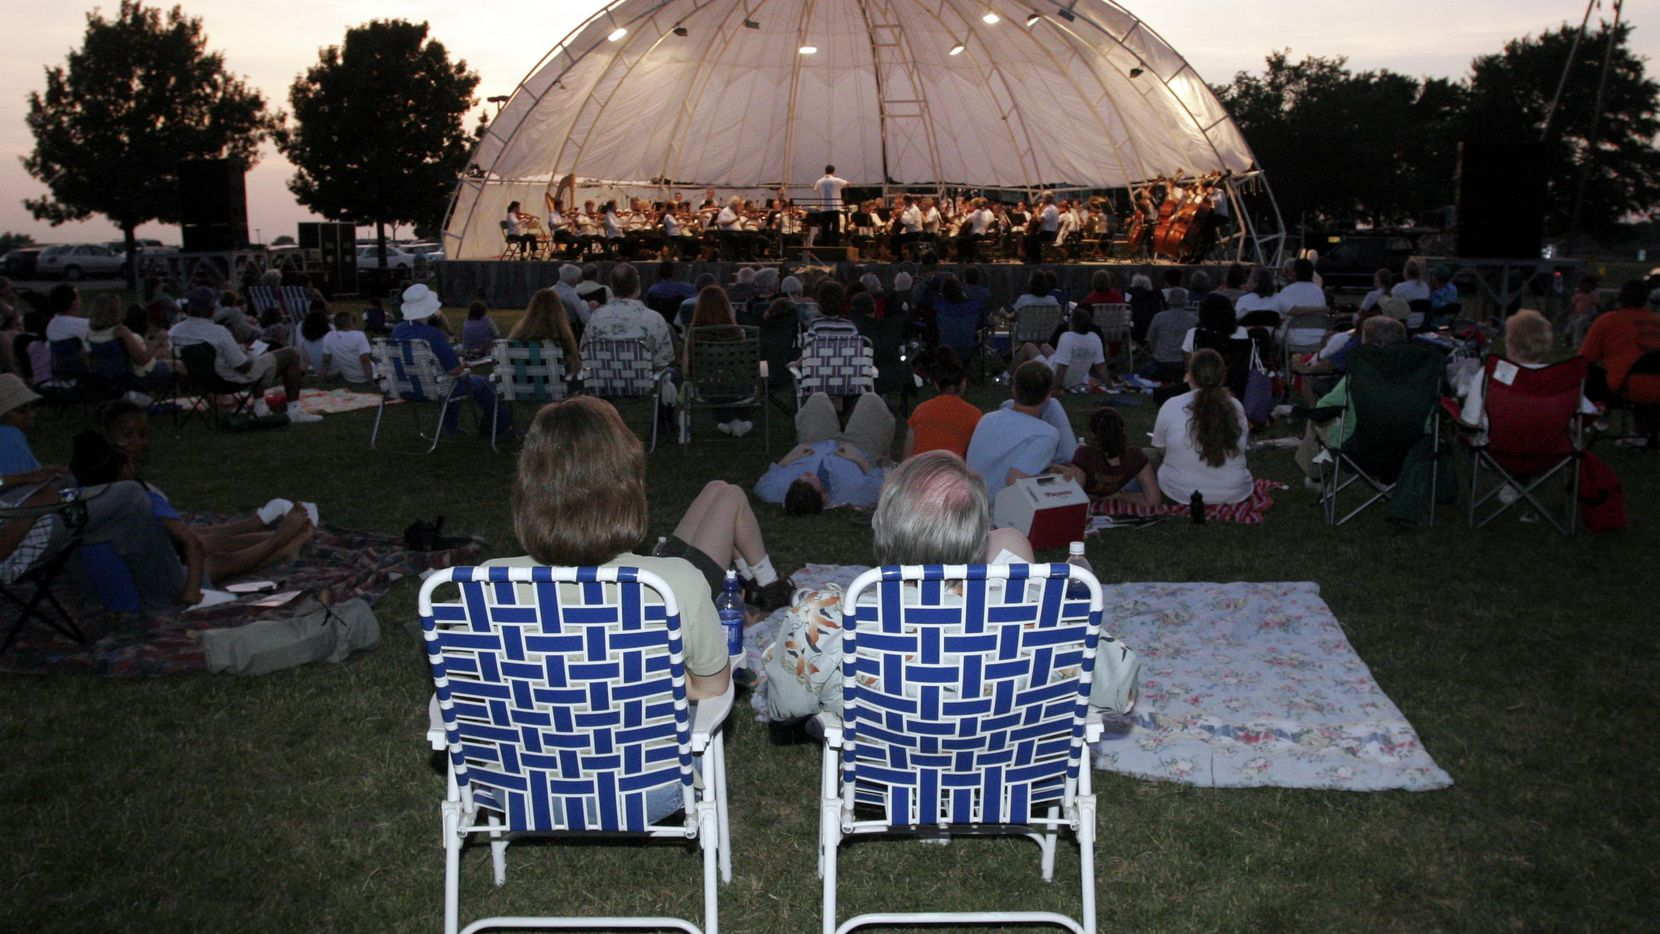 The popular outdoor Dalals Symphony Orchestra Community Concerts summer series returns with concerts at Kidd Springs Park and Paul Quinn College.